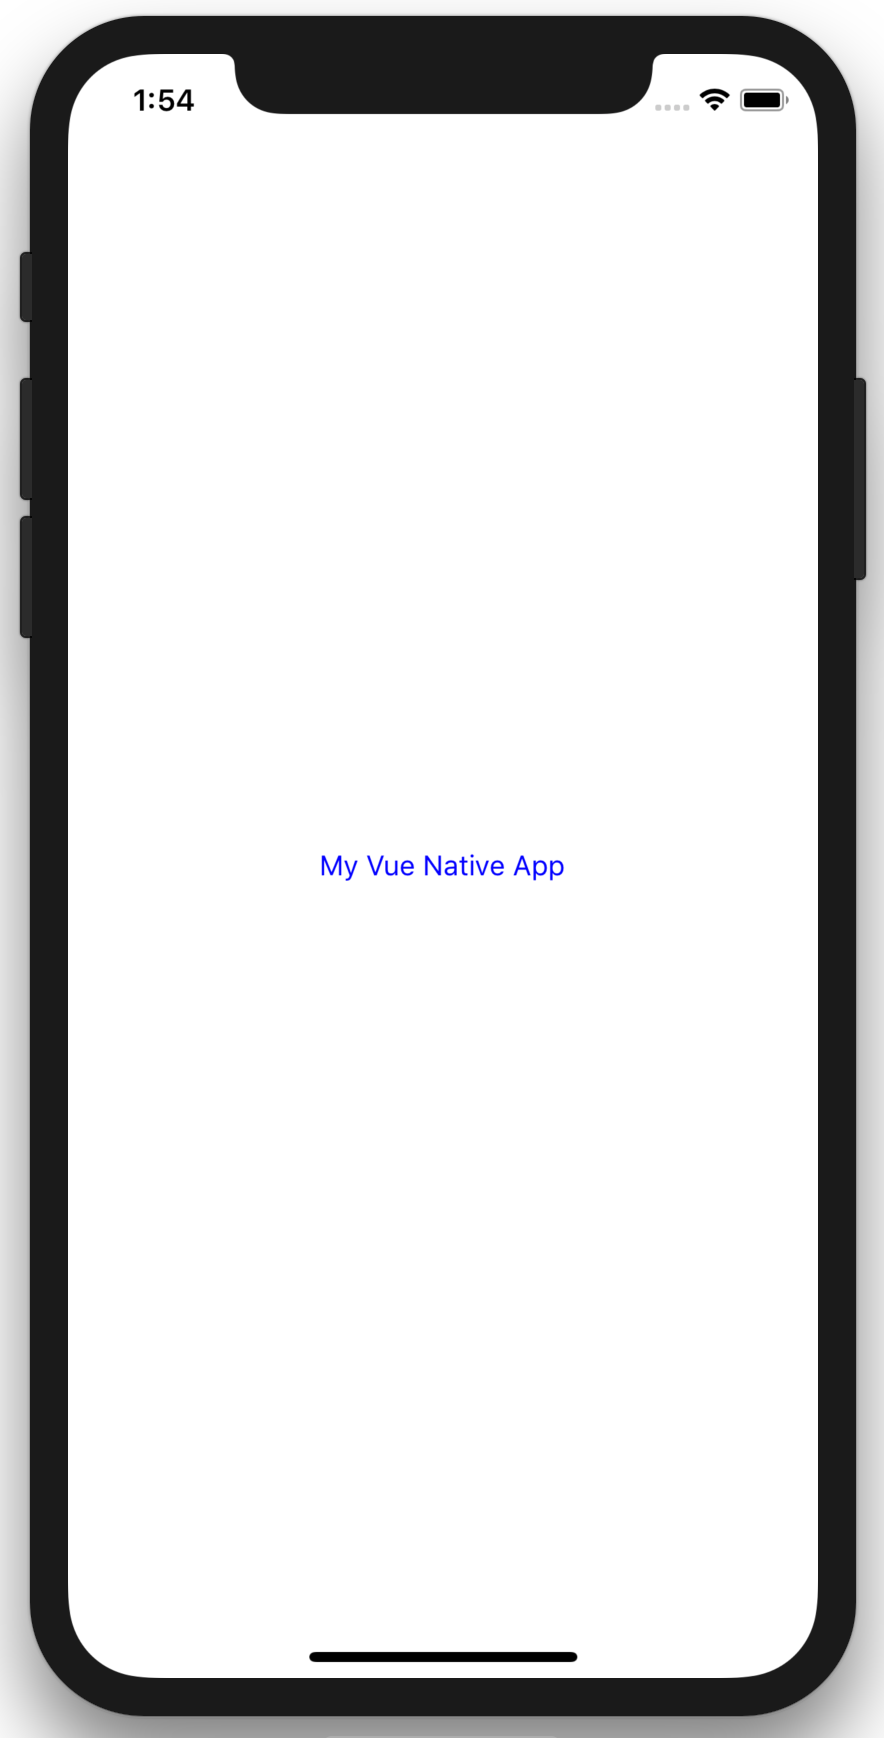 iPhone X - 11.4 2018-06-13 13-54-23.png